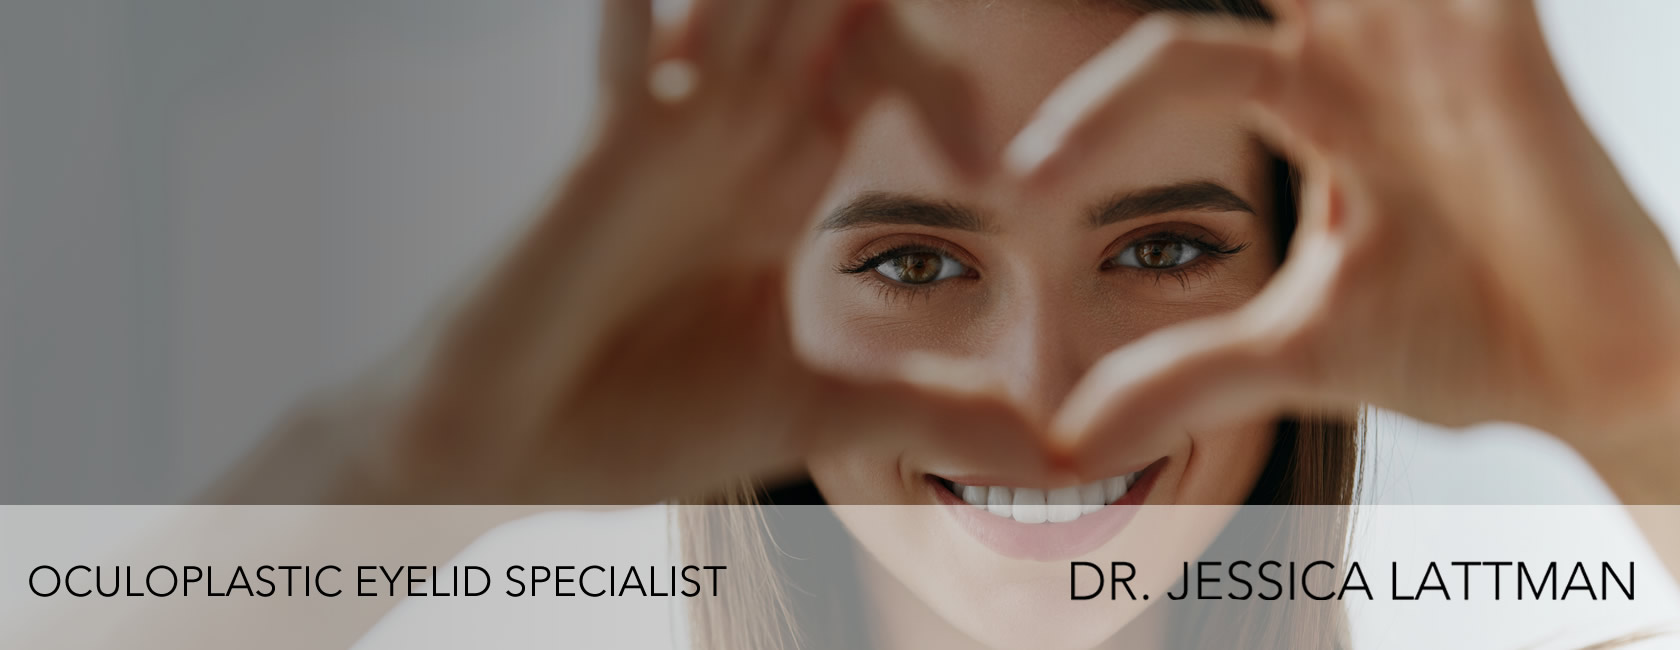 Eyelid Specialist New York City NYC